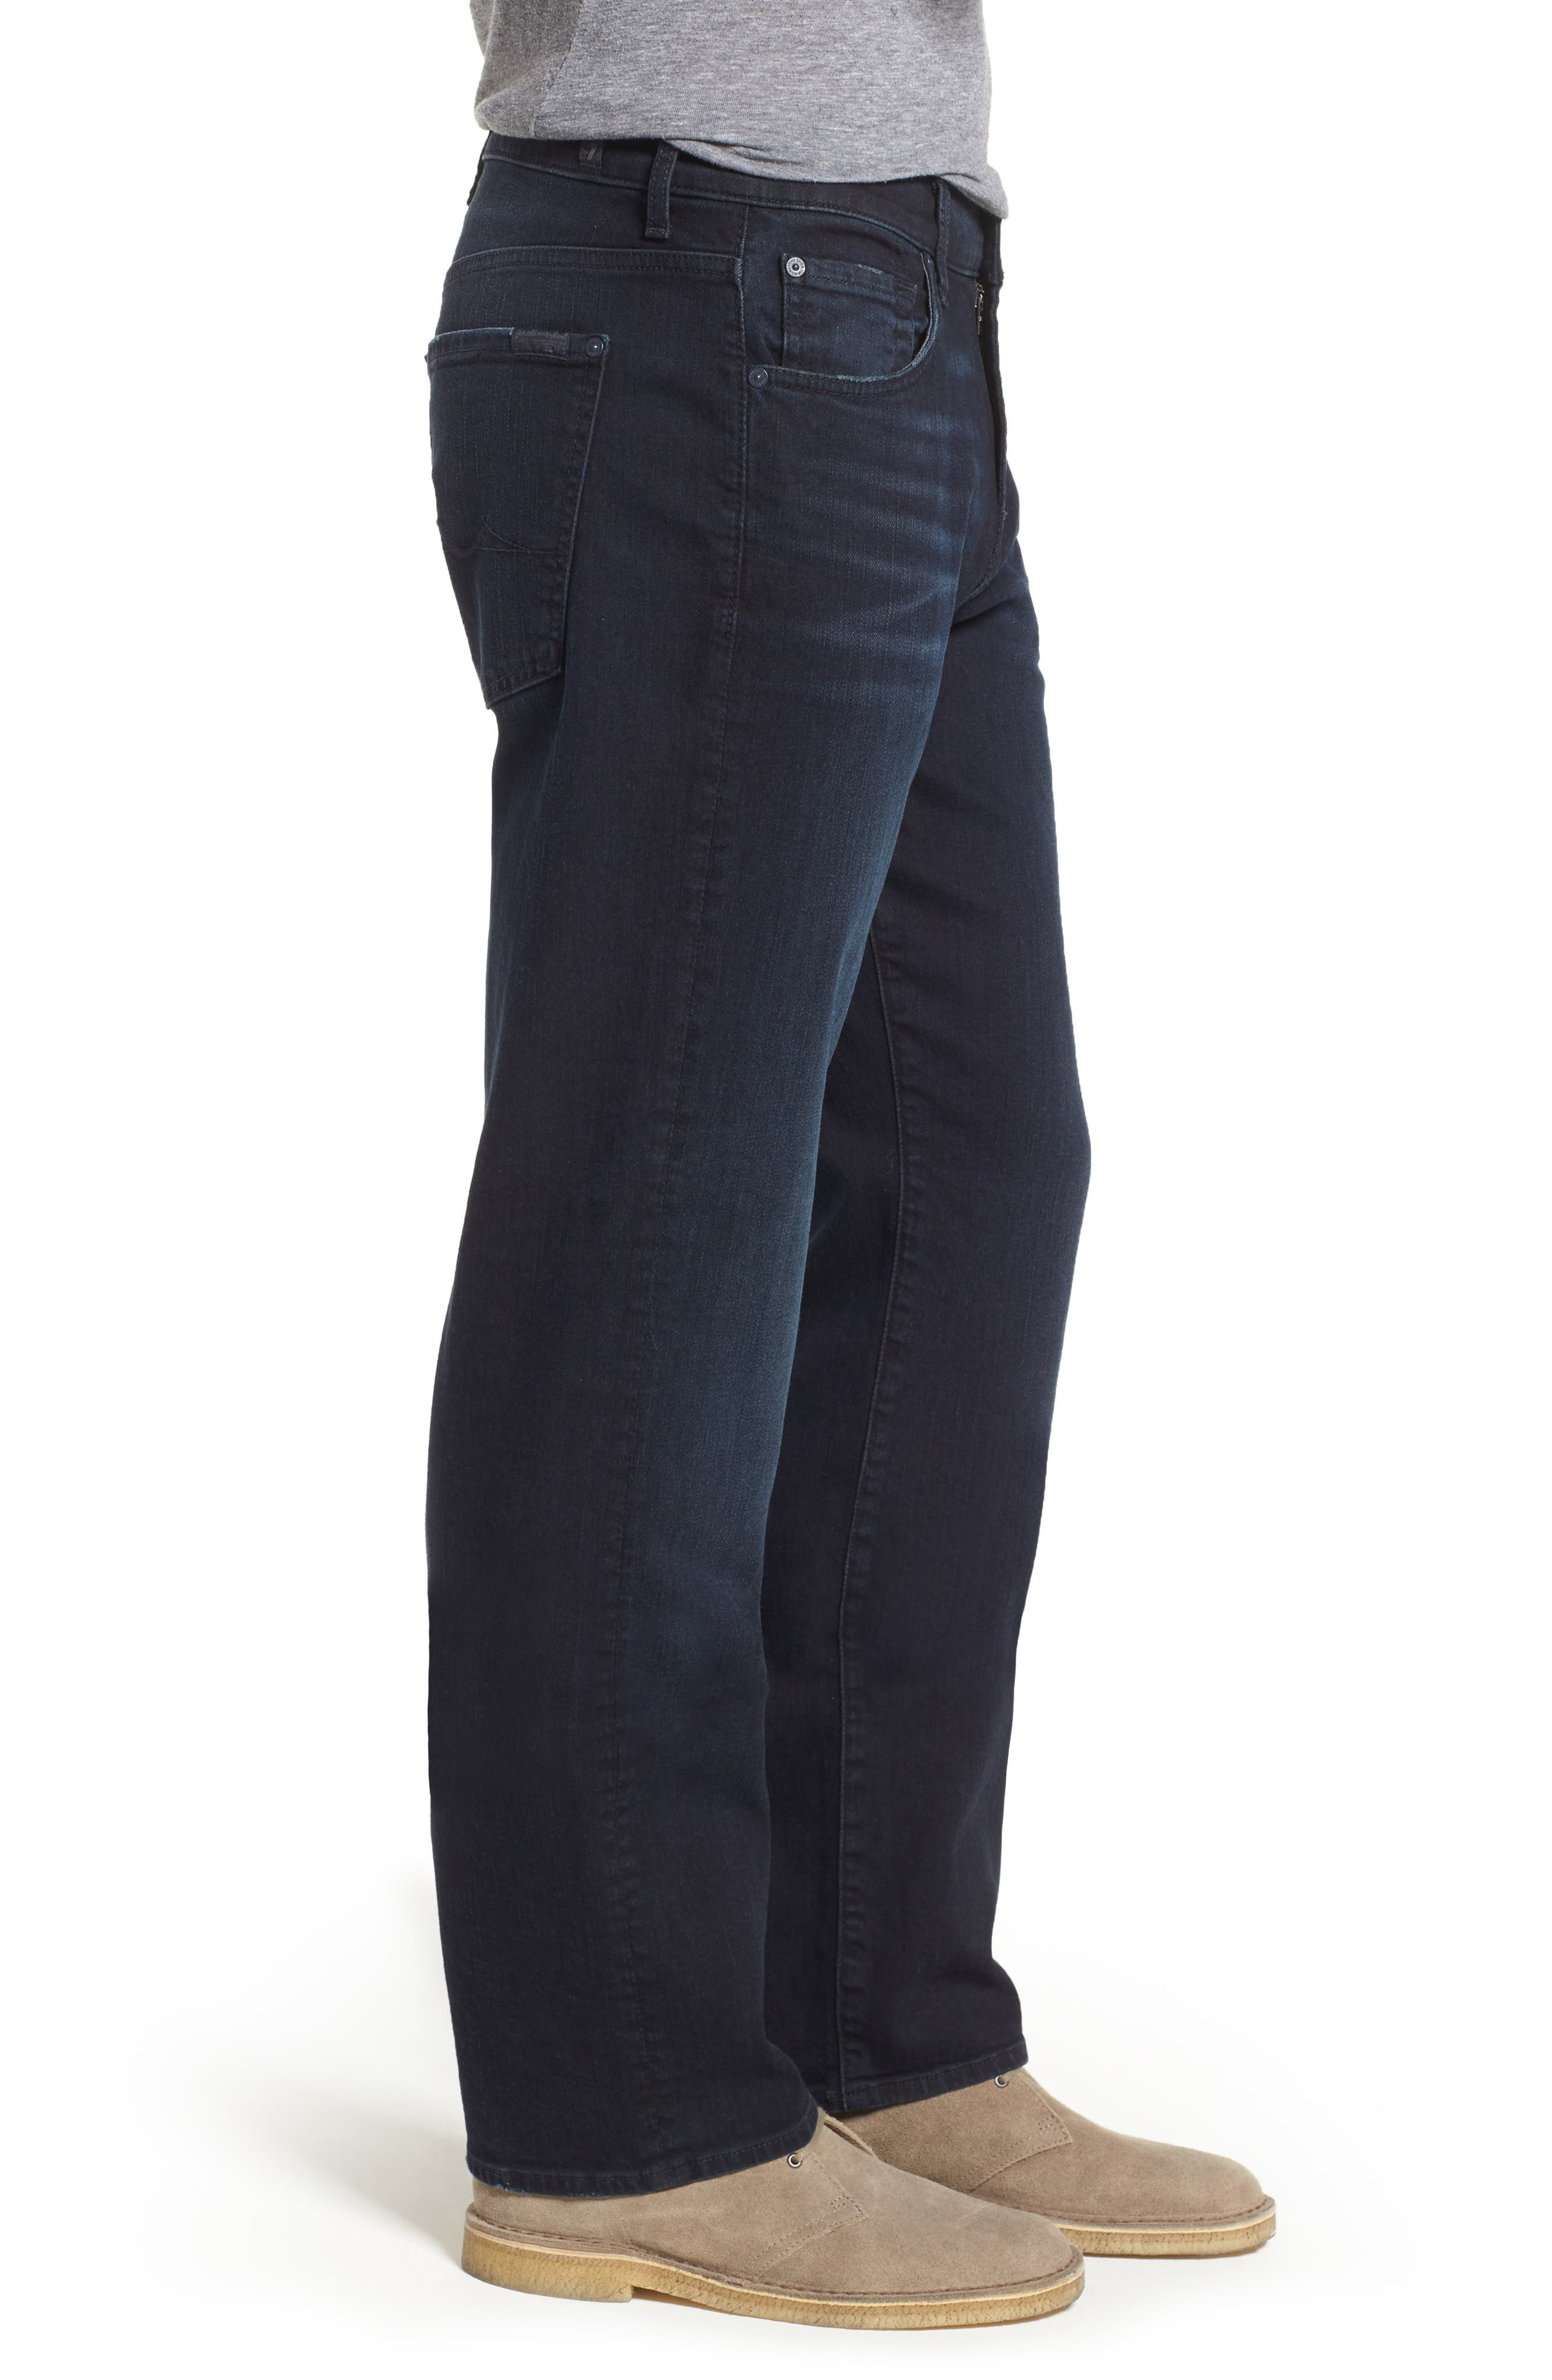 'Austyn- LuxePerformance' Relaxed Fit Jeans,                             Alternate thumbnail 3, color,                             Havoc